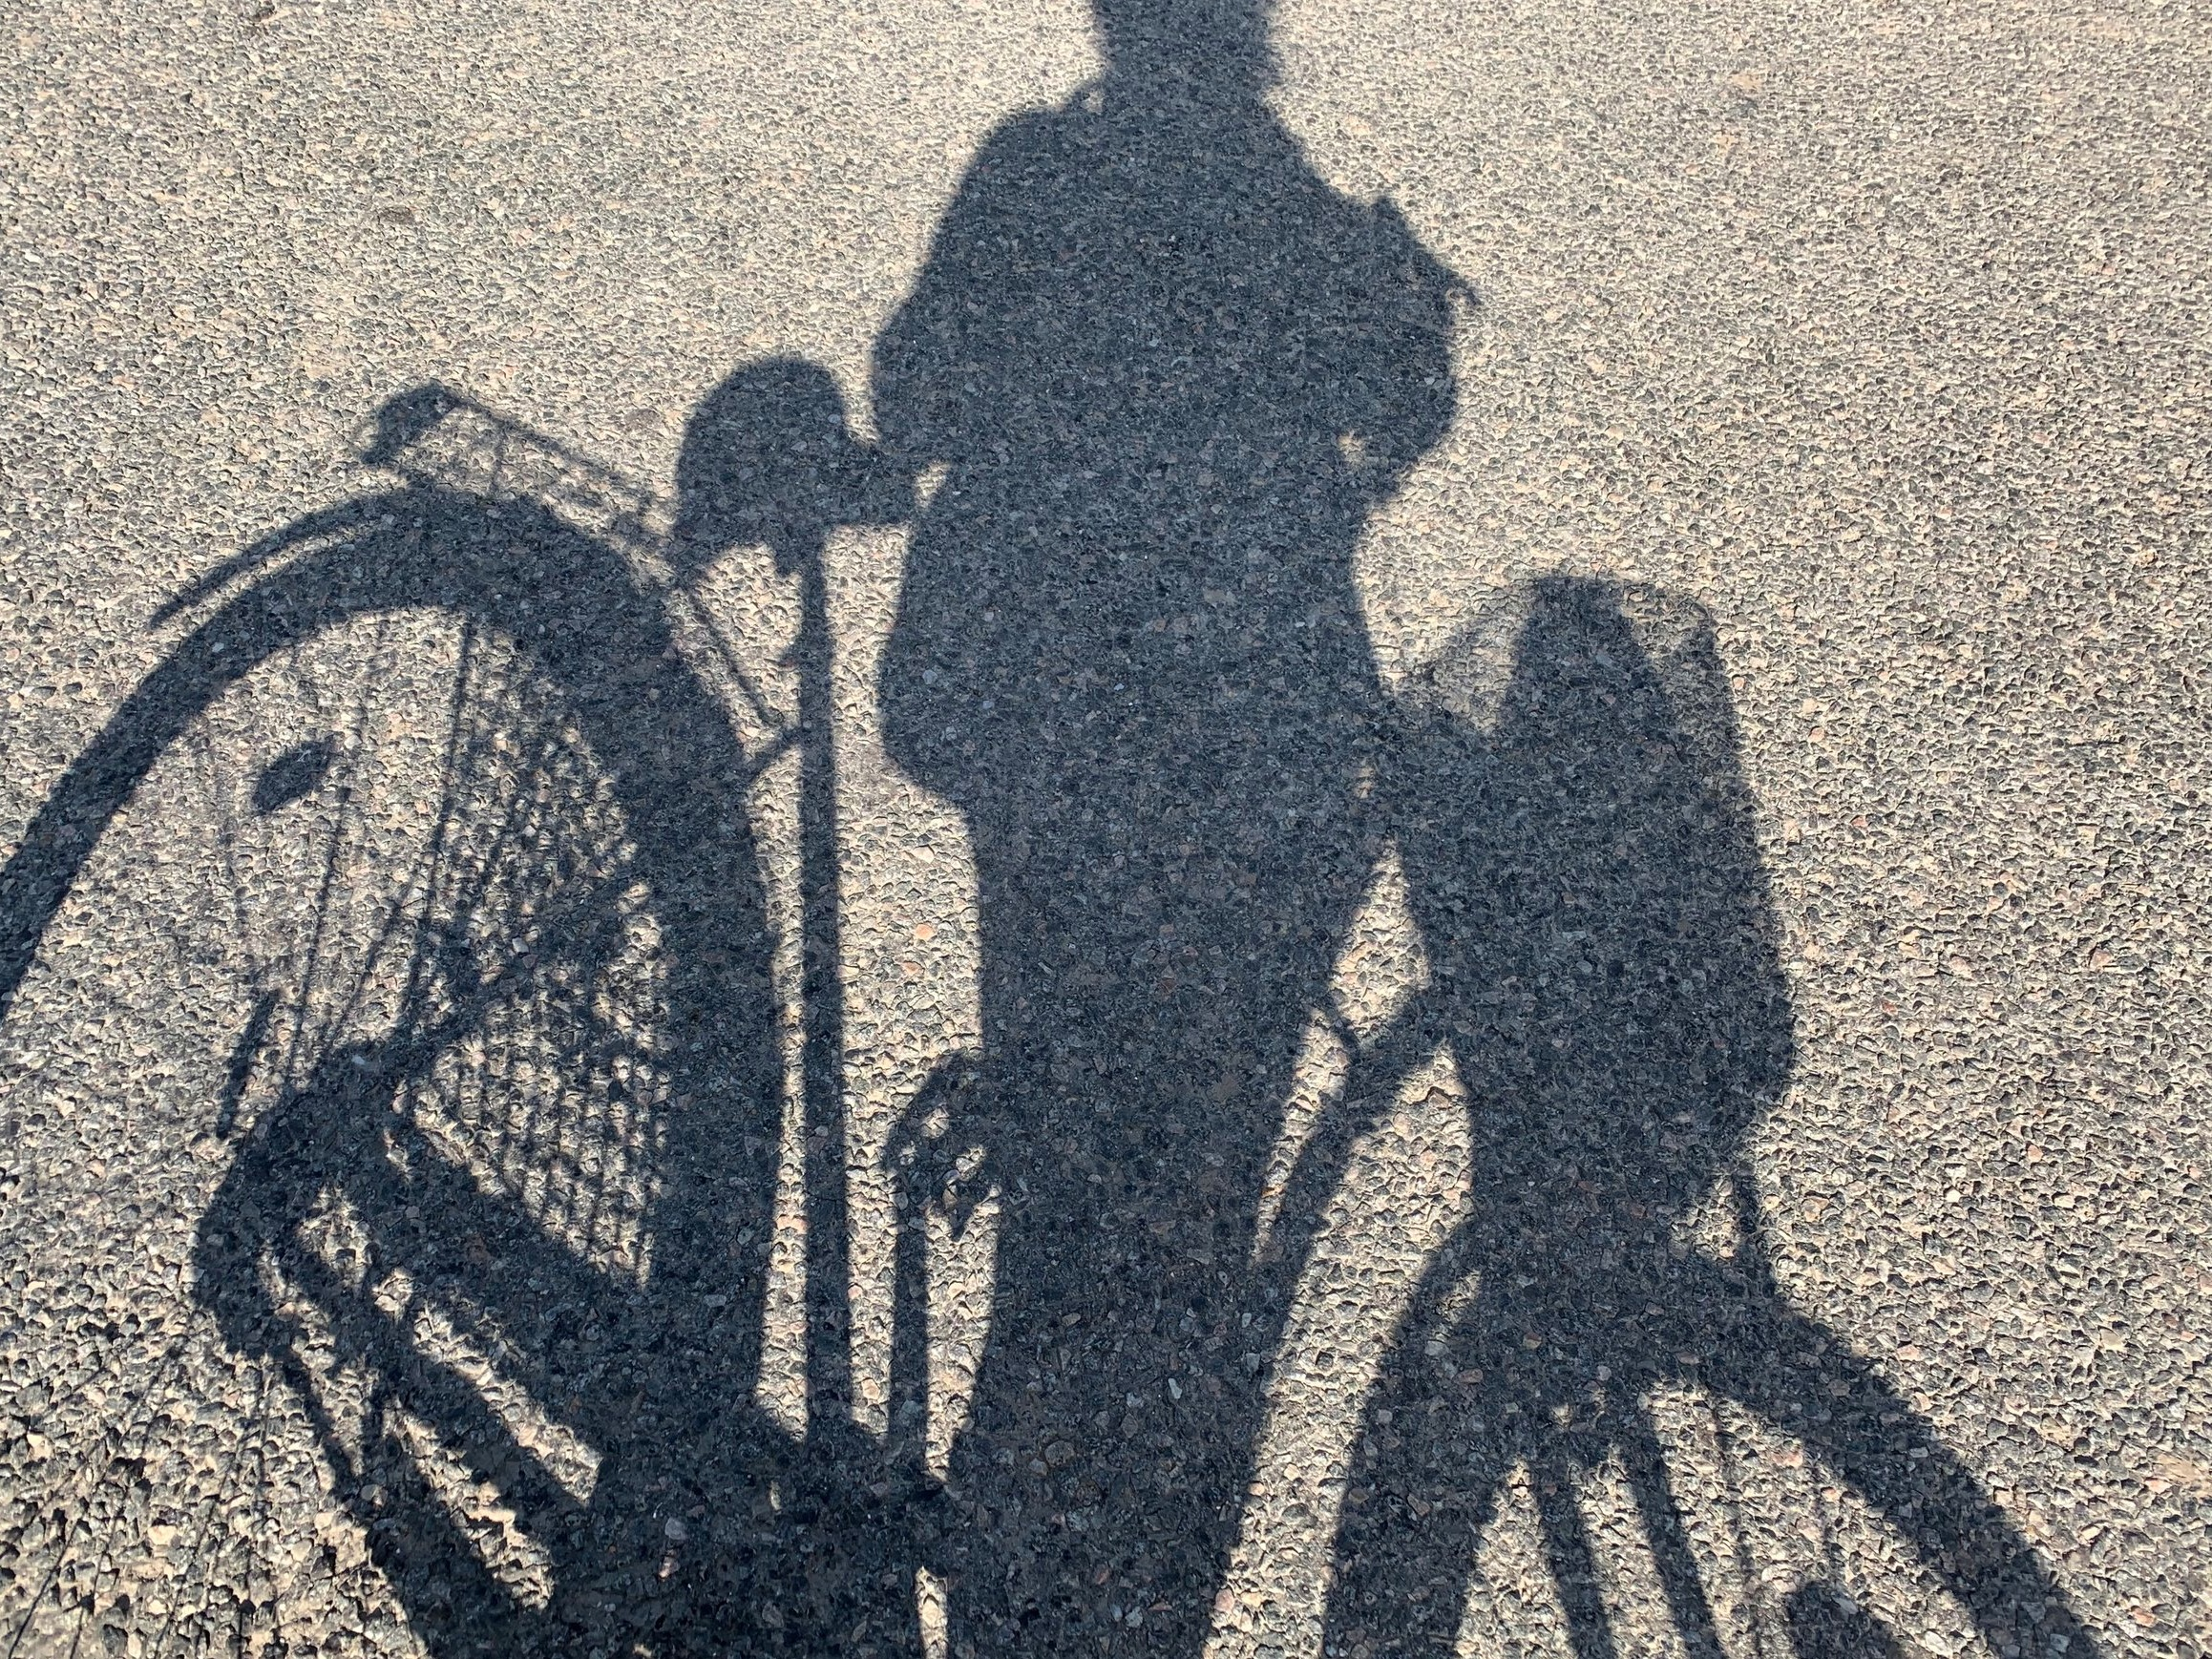 bicycle+shadow.jpg